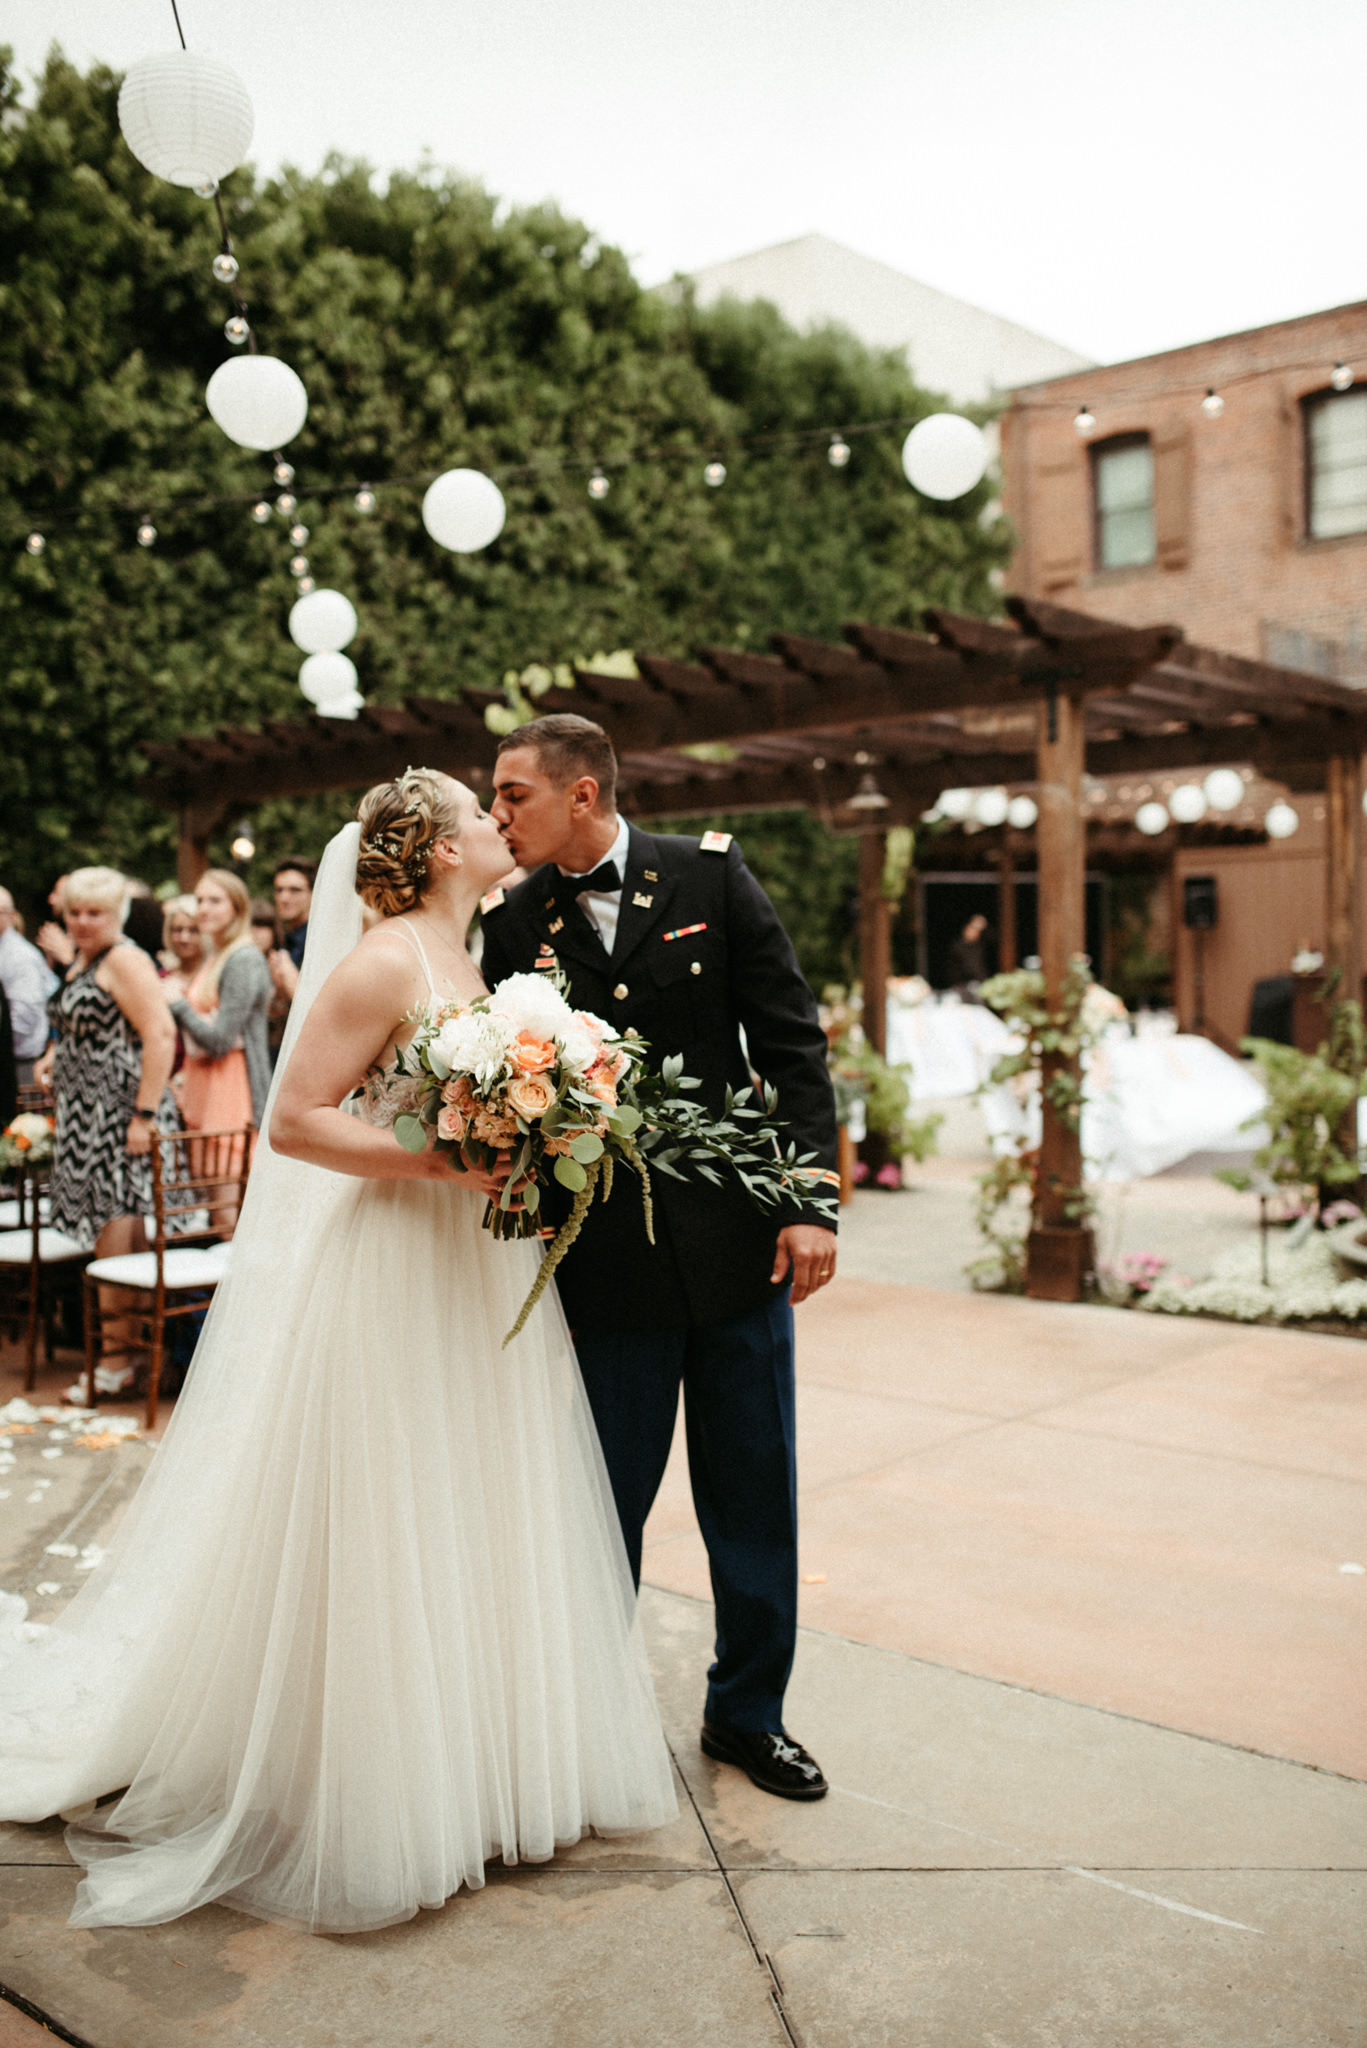 Zach and Rosalie - Franciscan Garden Wedding - San Juan Capistrano - The Mission - Southern California Wedding Photographer-4945.jpg